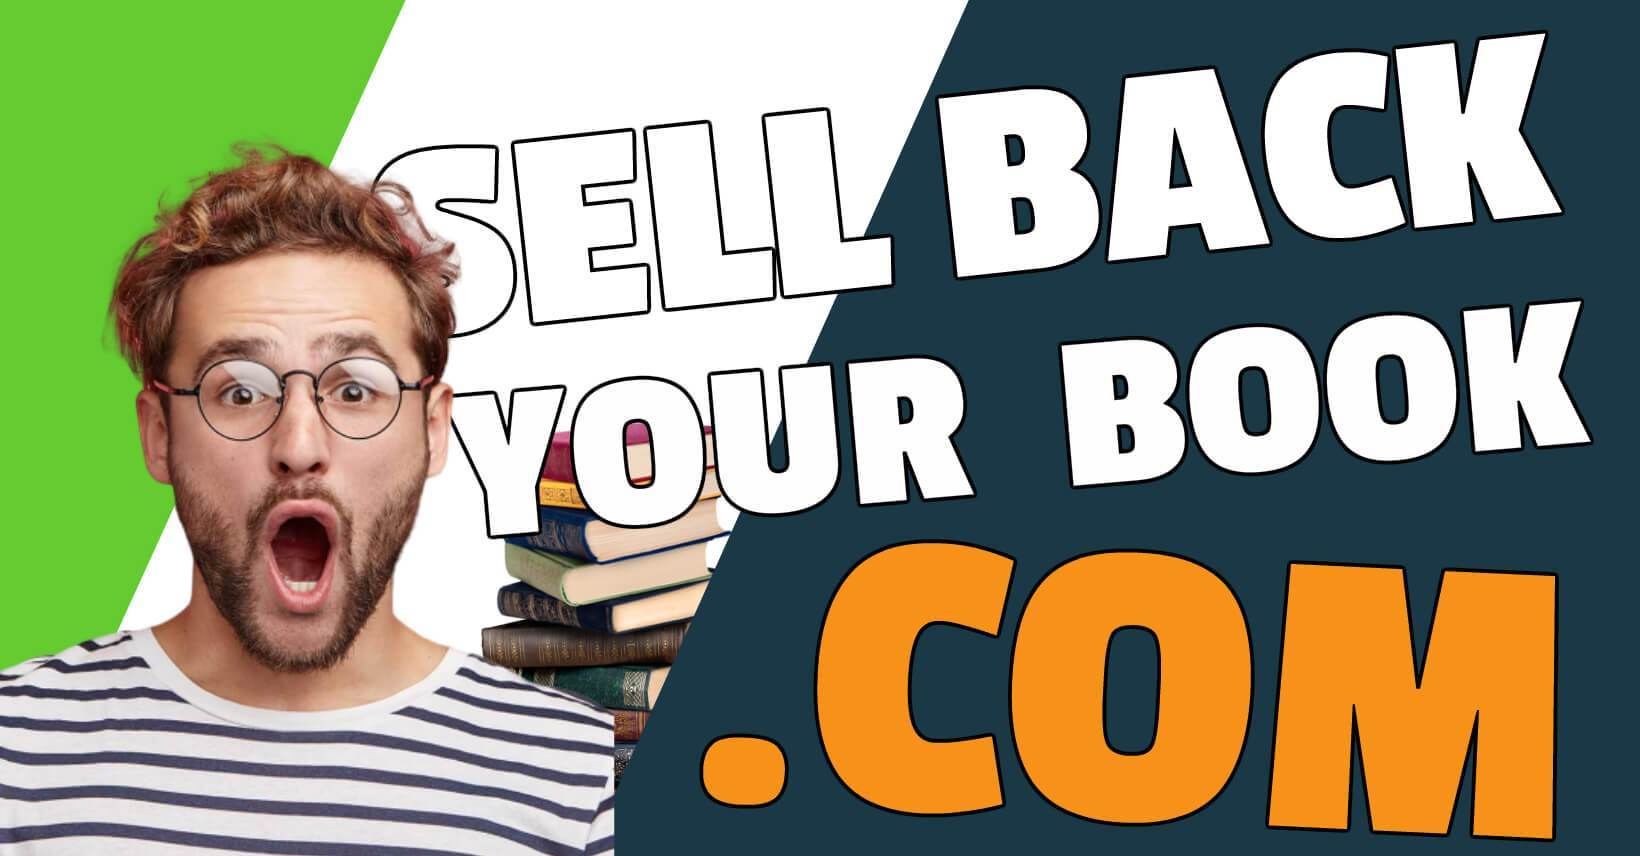 3 more ways to Sell Back Your Book besides Amazon!